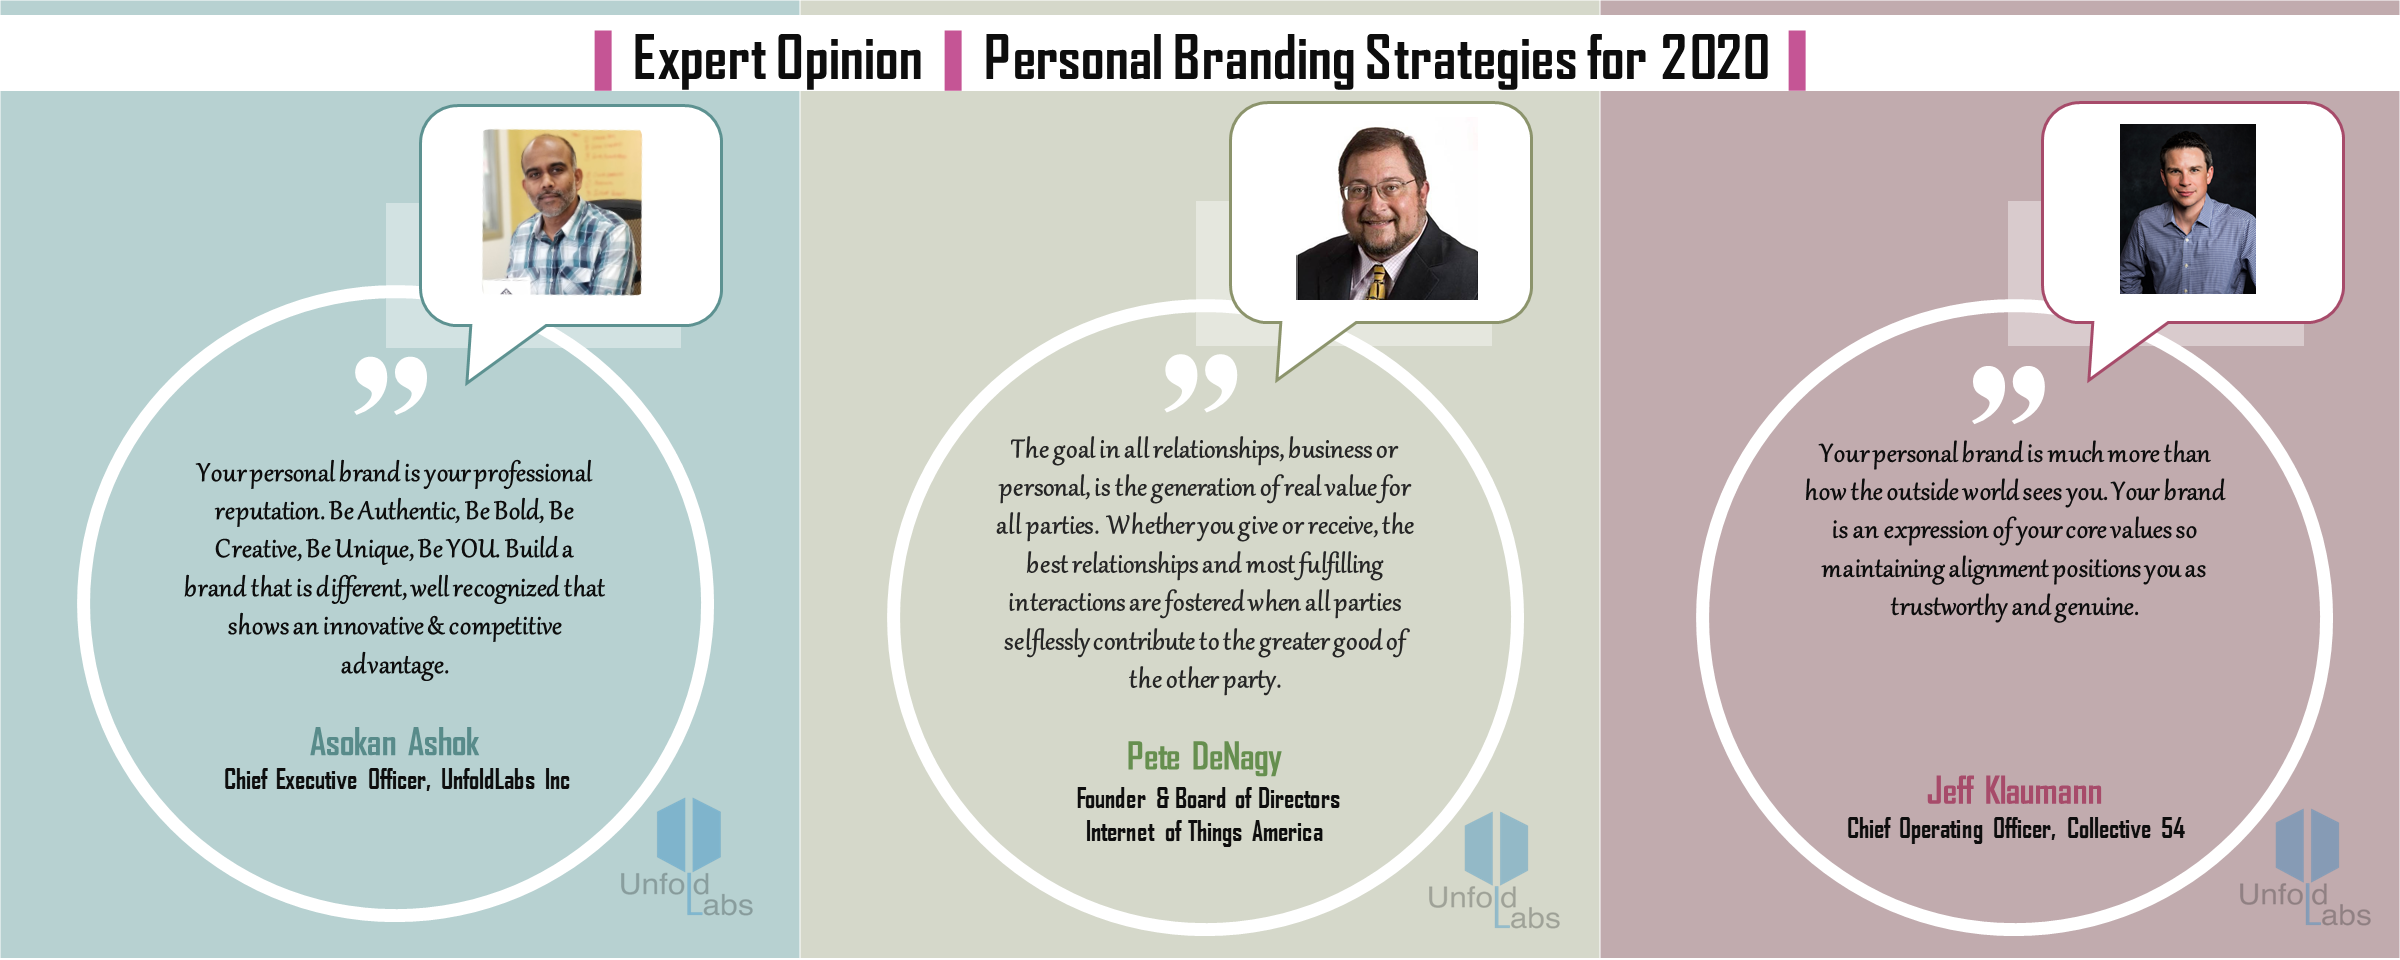 Exceptional - 20 Top Personal Branding Strategies for 2020